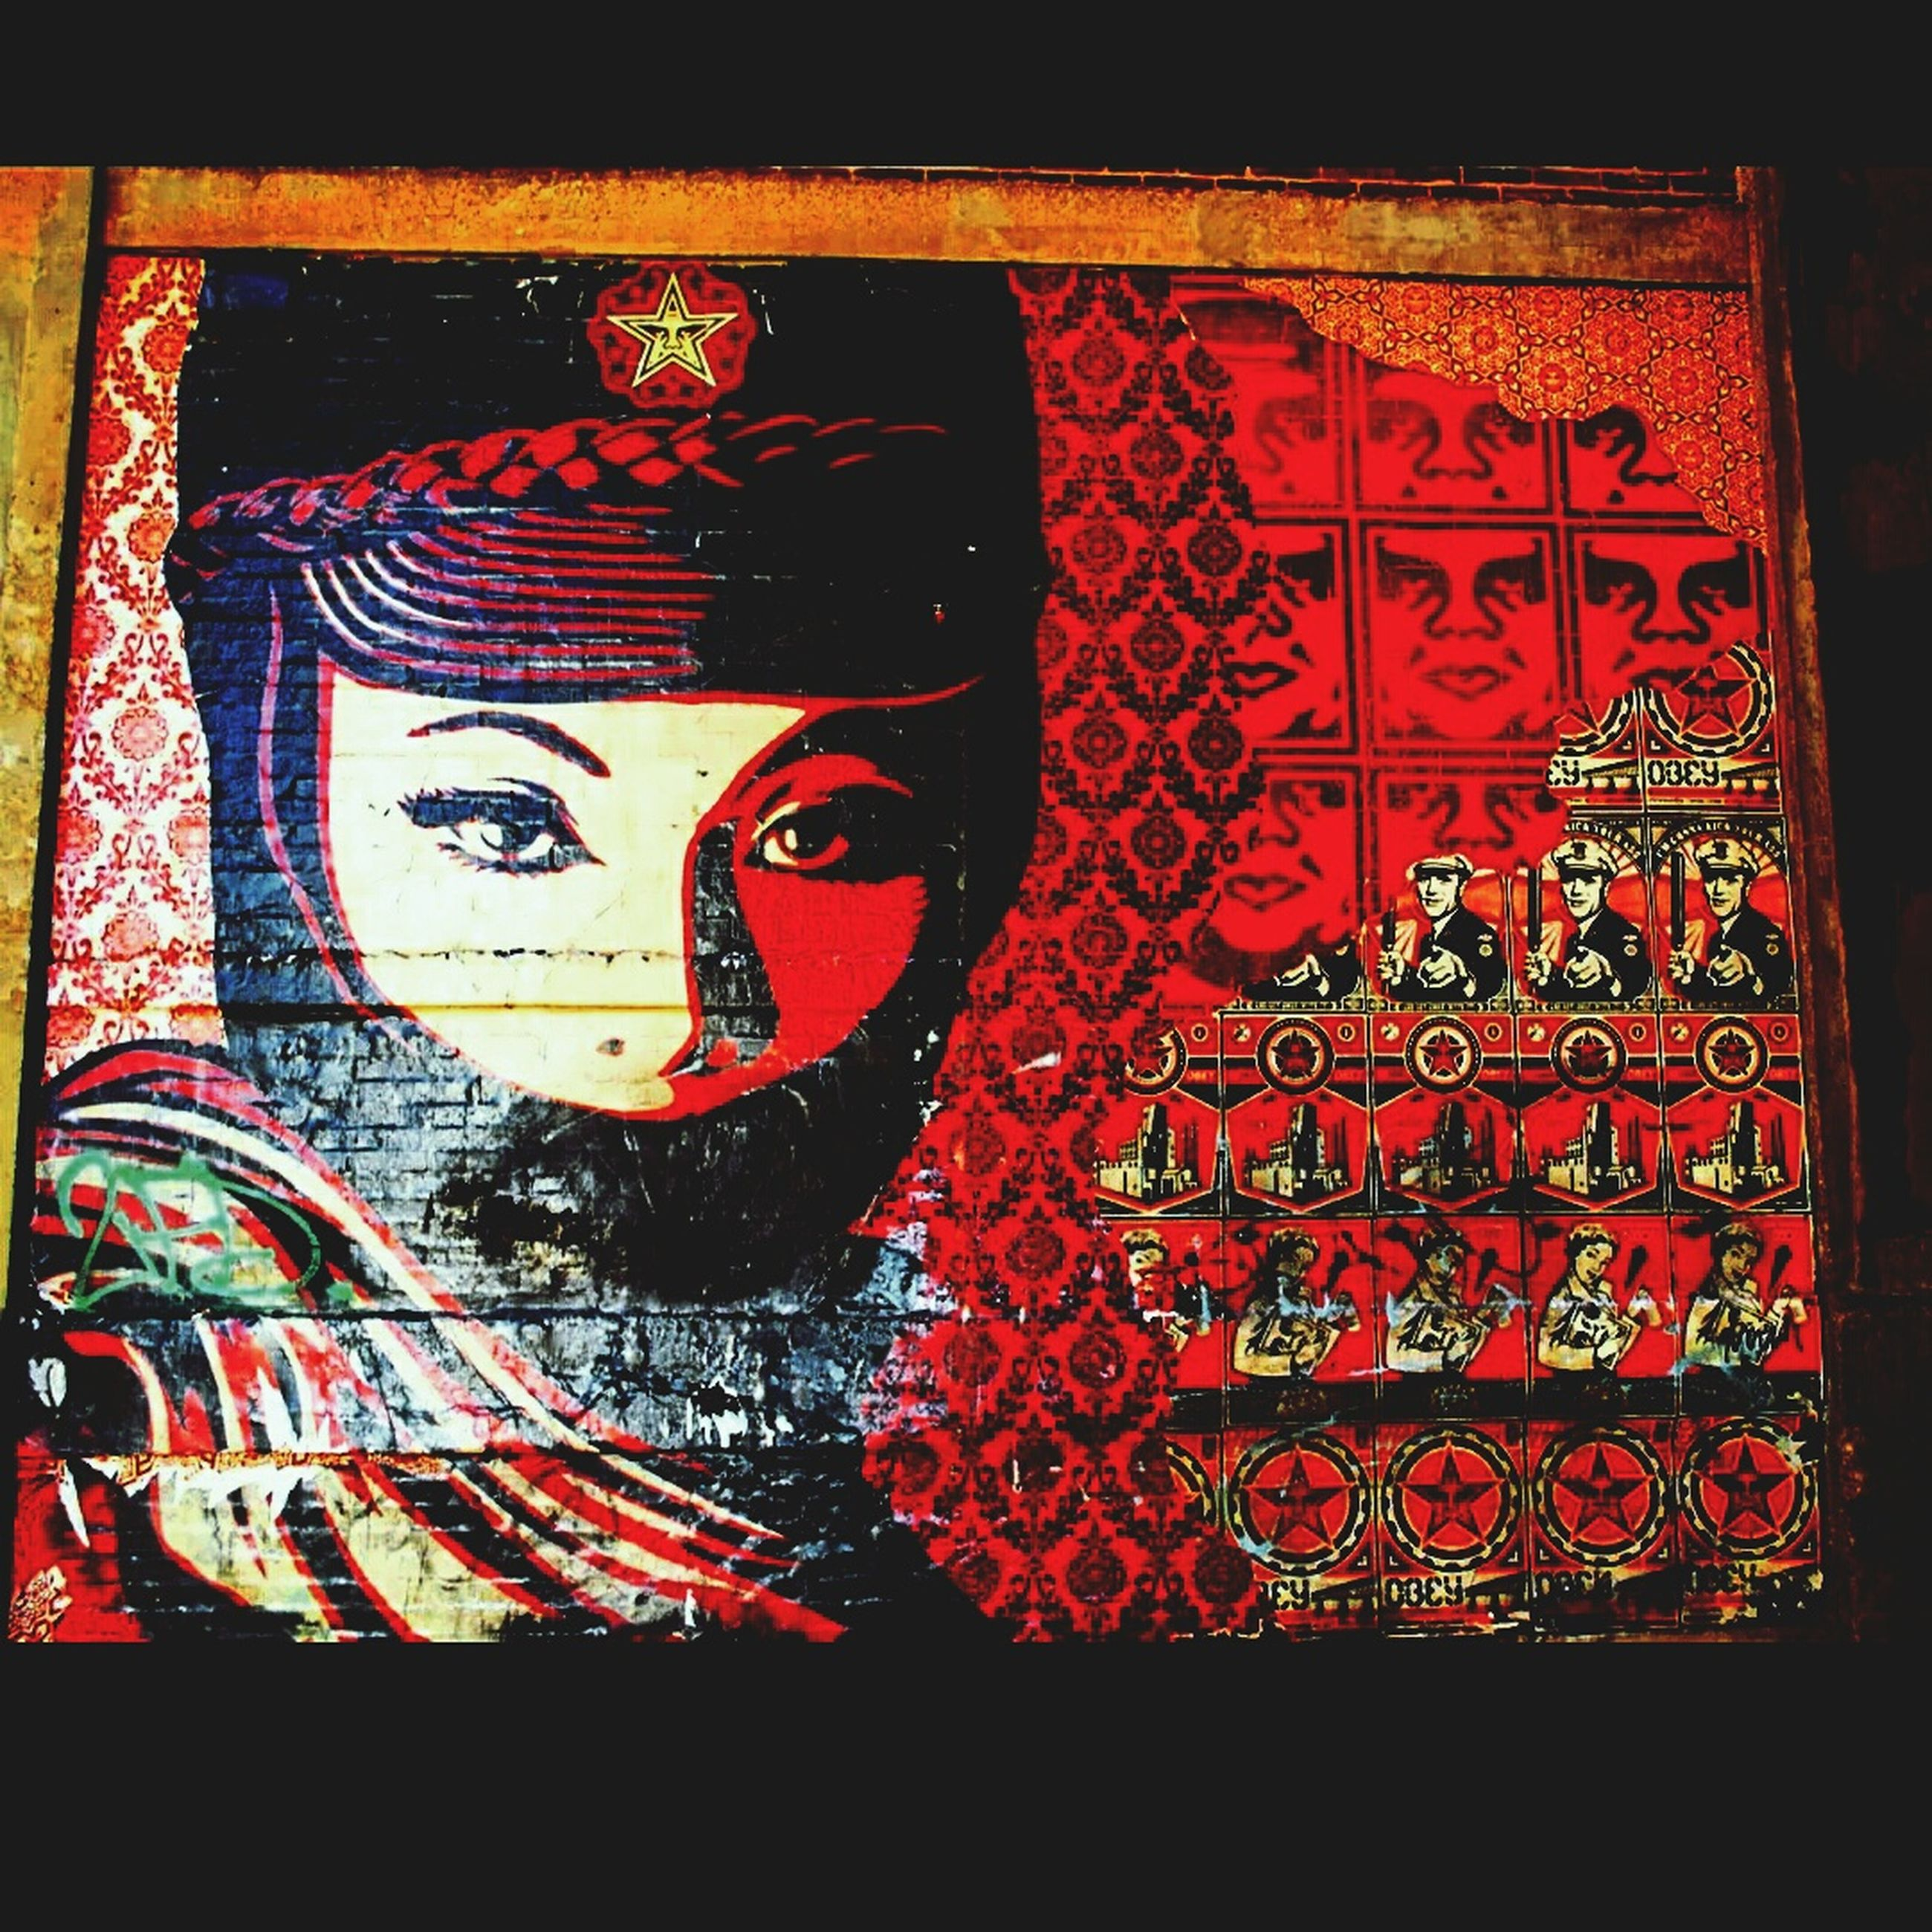 indoors, red, art and craft, art, creativity, human representation, close-up, wall - building feature, black background, front view, pattern, no people, fabric, design, auto post production filter, religion, dark, cultures